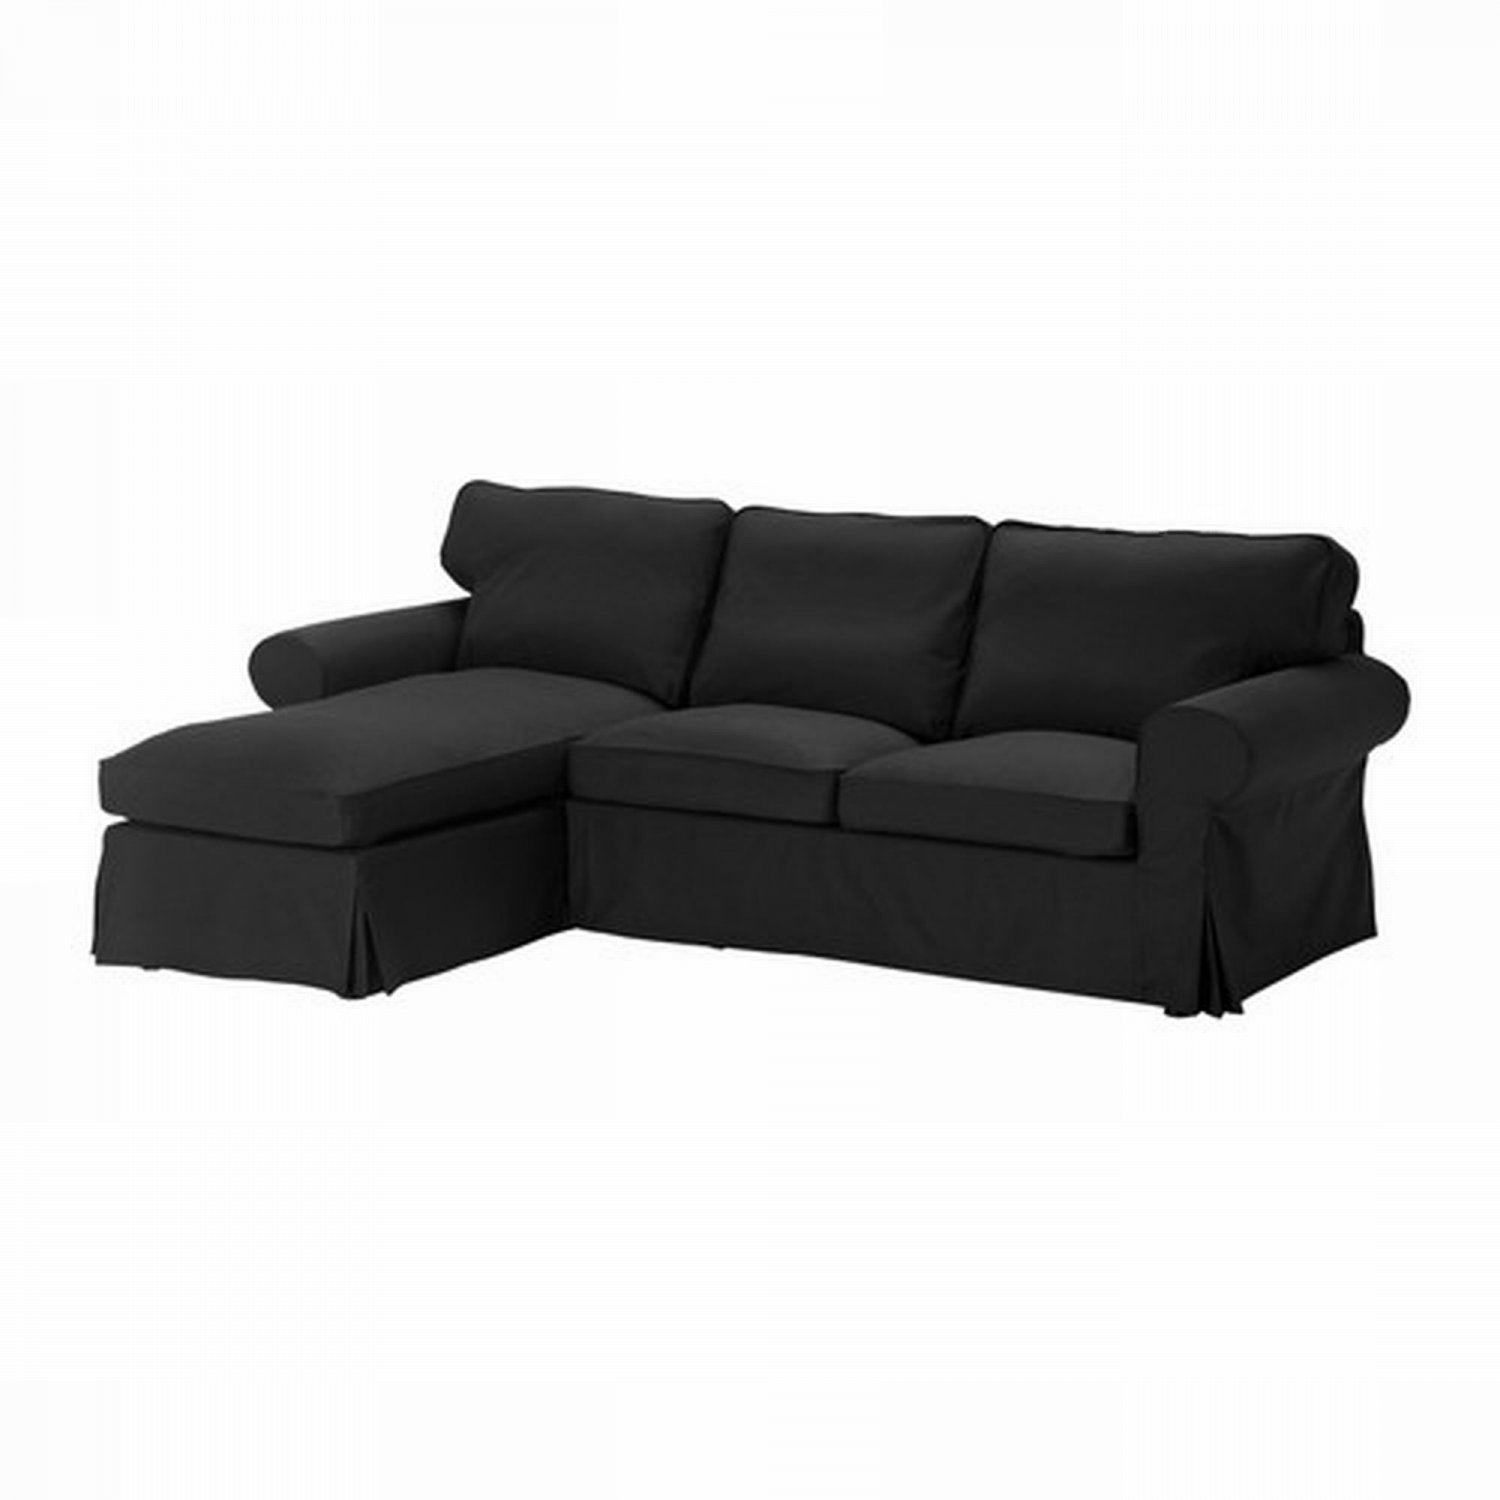 Ikea Ektorp 2 Seat Loveseat Sofa With Chaise Cover Slipcover Idemo Black